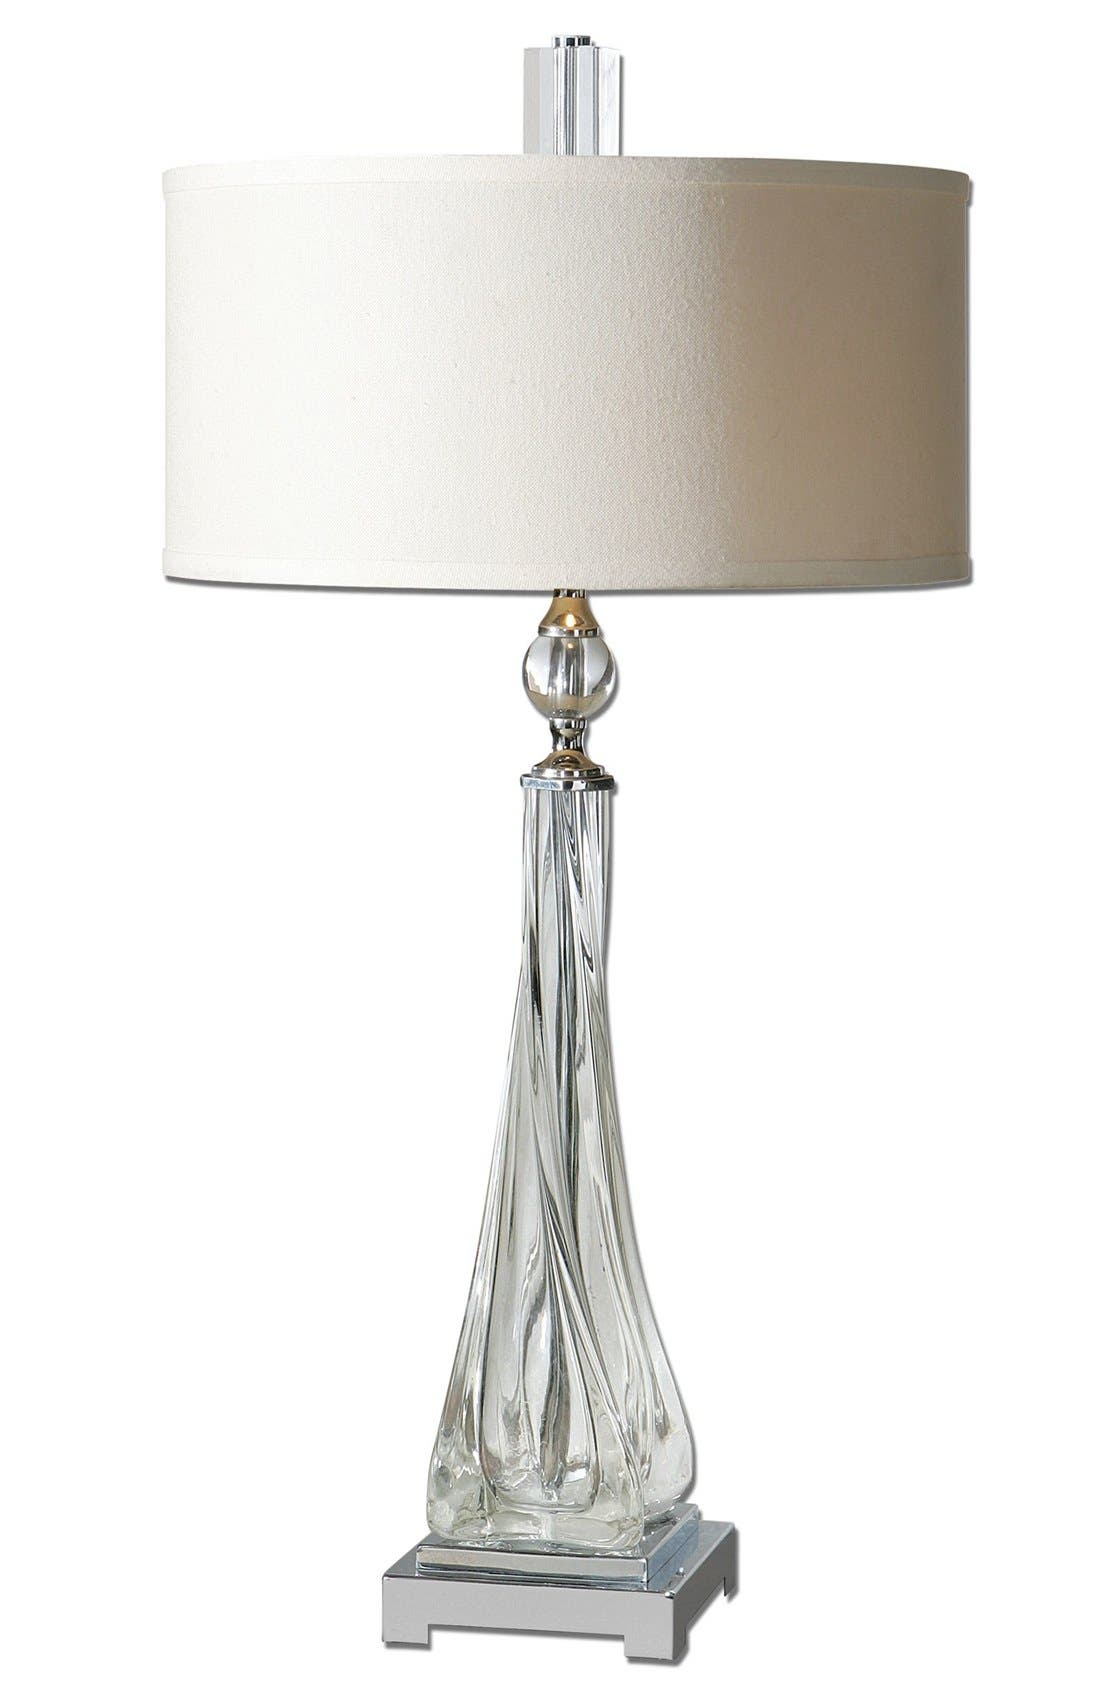 Main Image - Uttermost 'Grancona' Glass Table Lamp